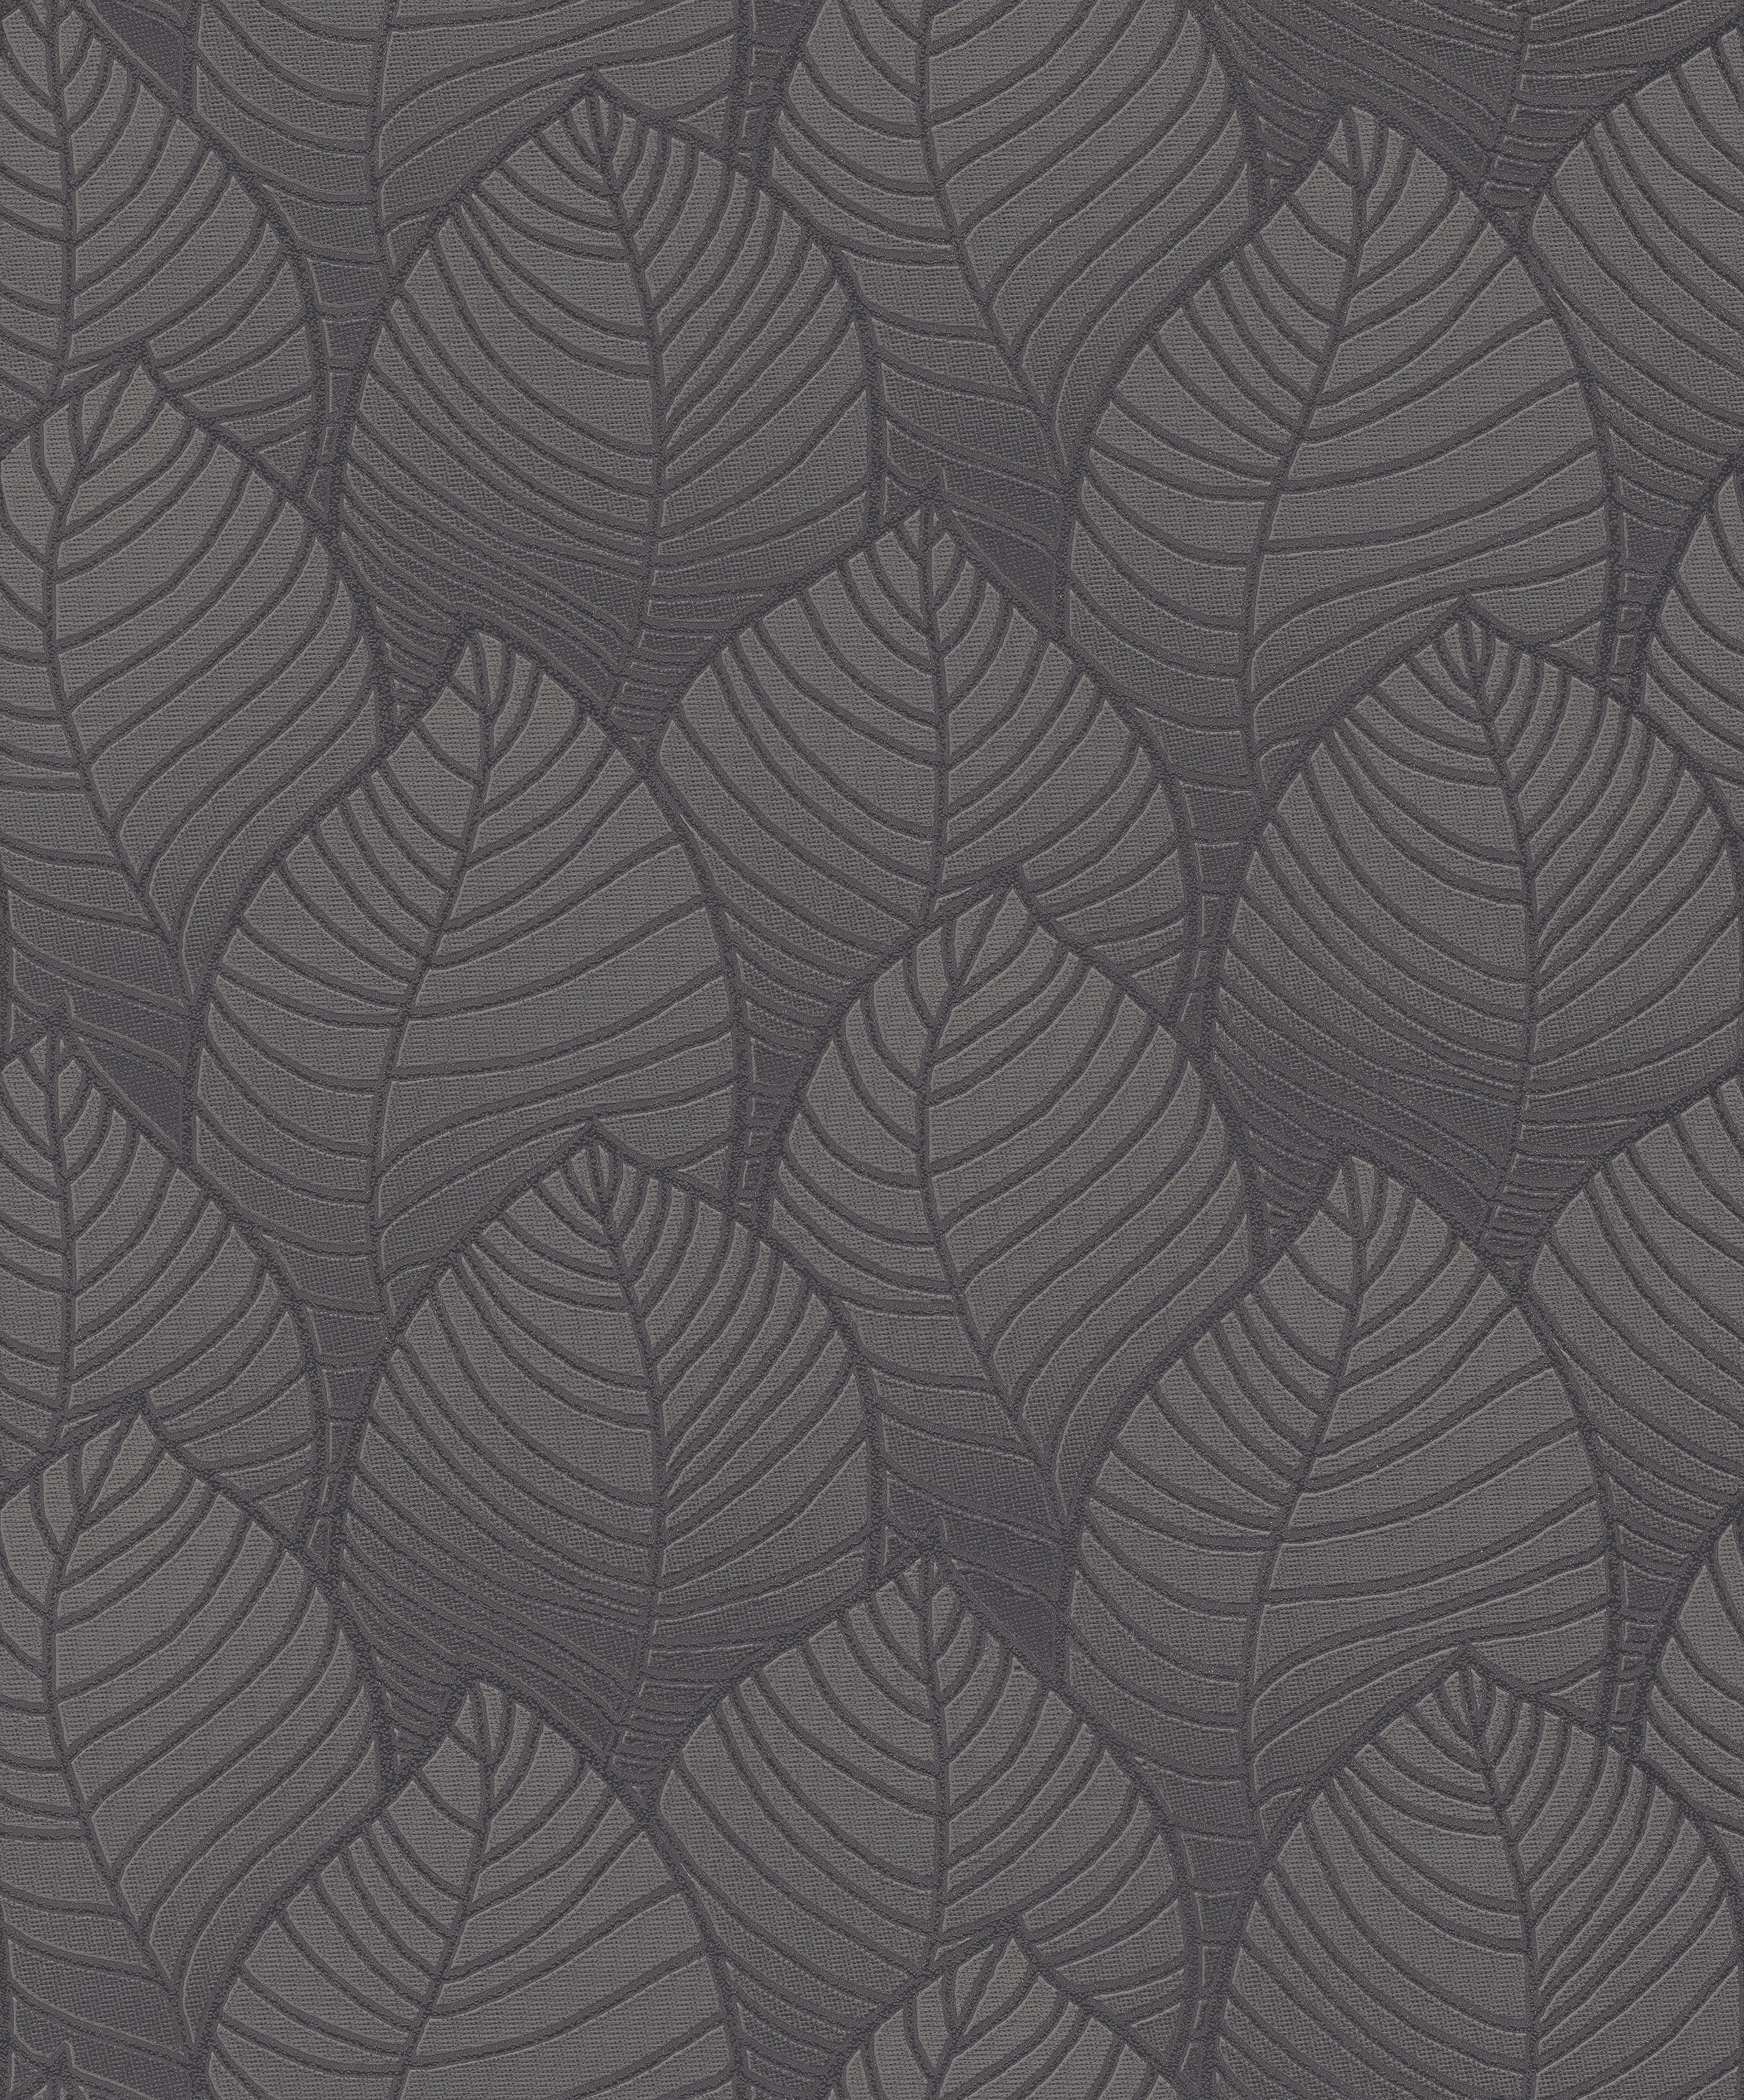 Orion Floral Leaf Pattern Embossed Motif NonWoven